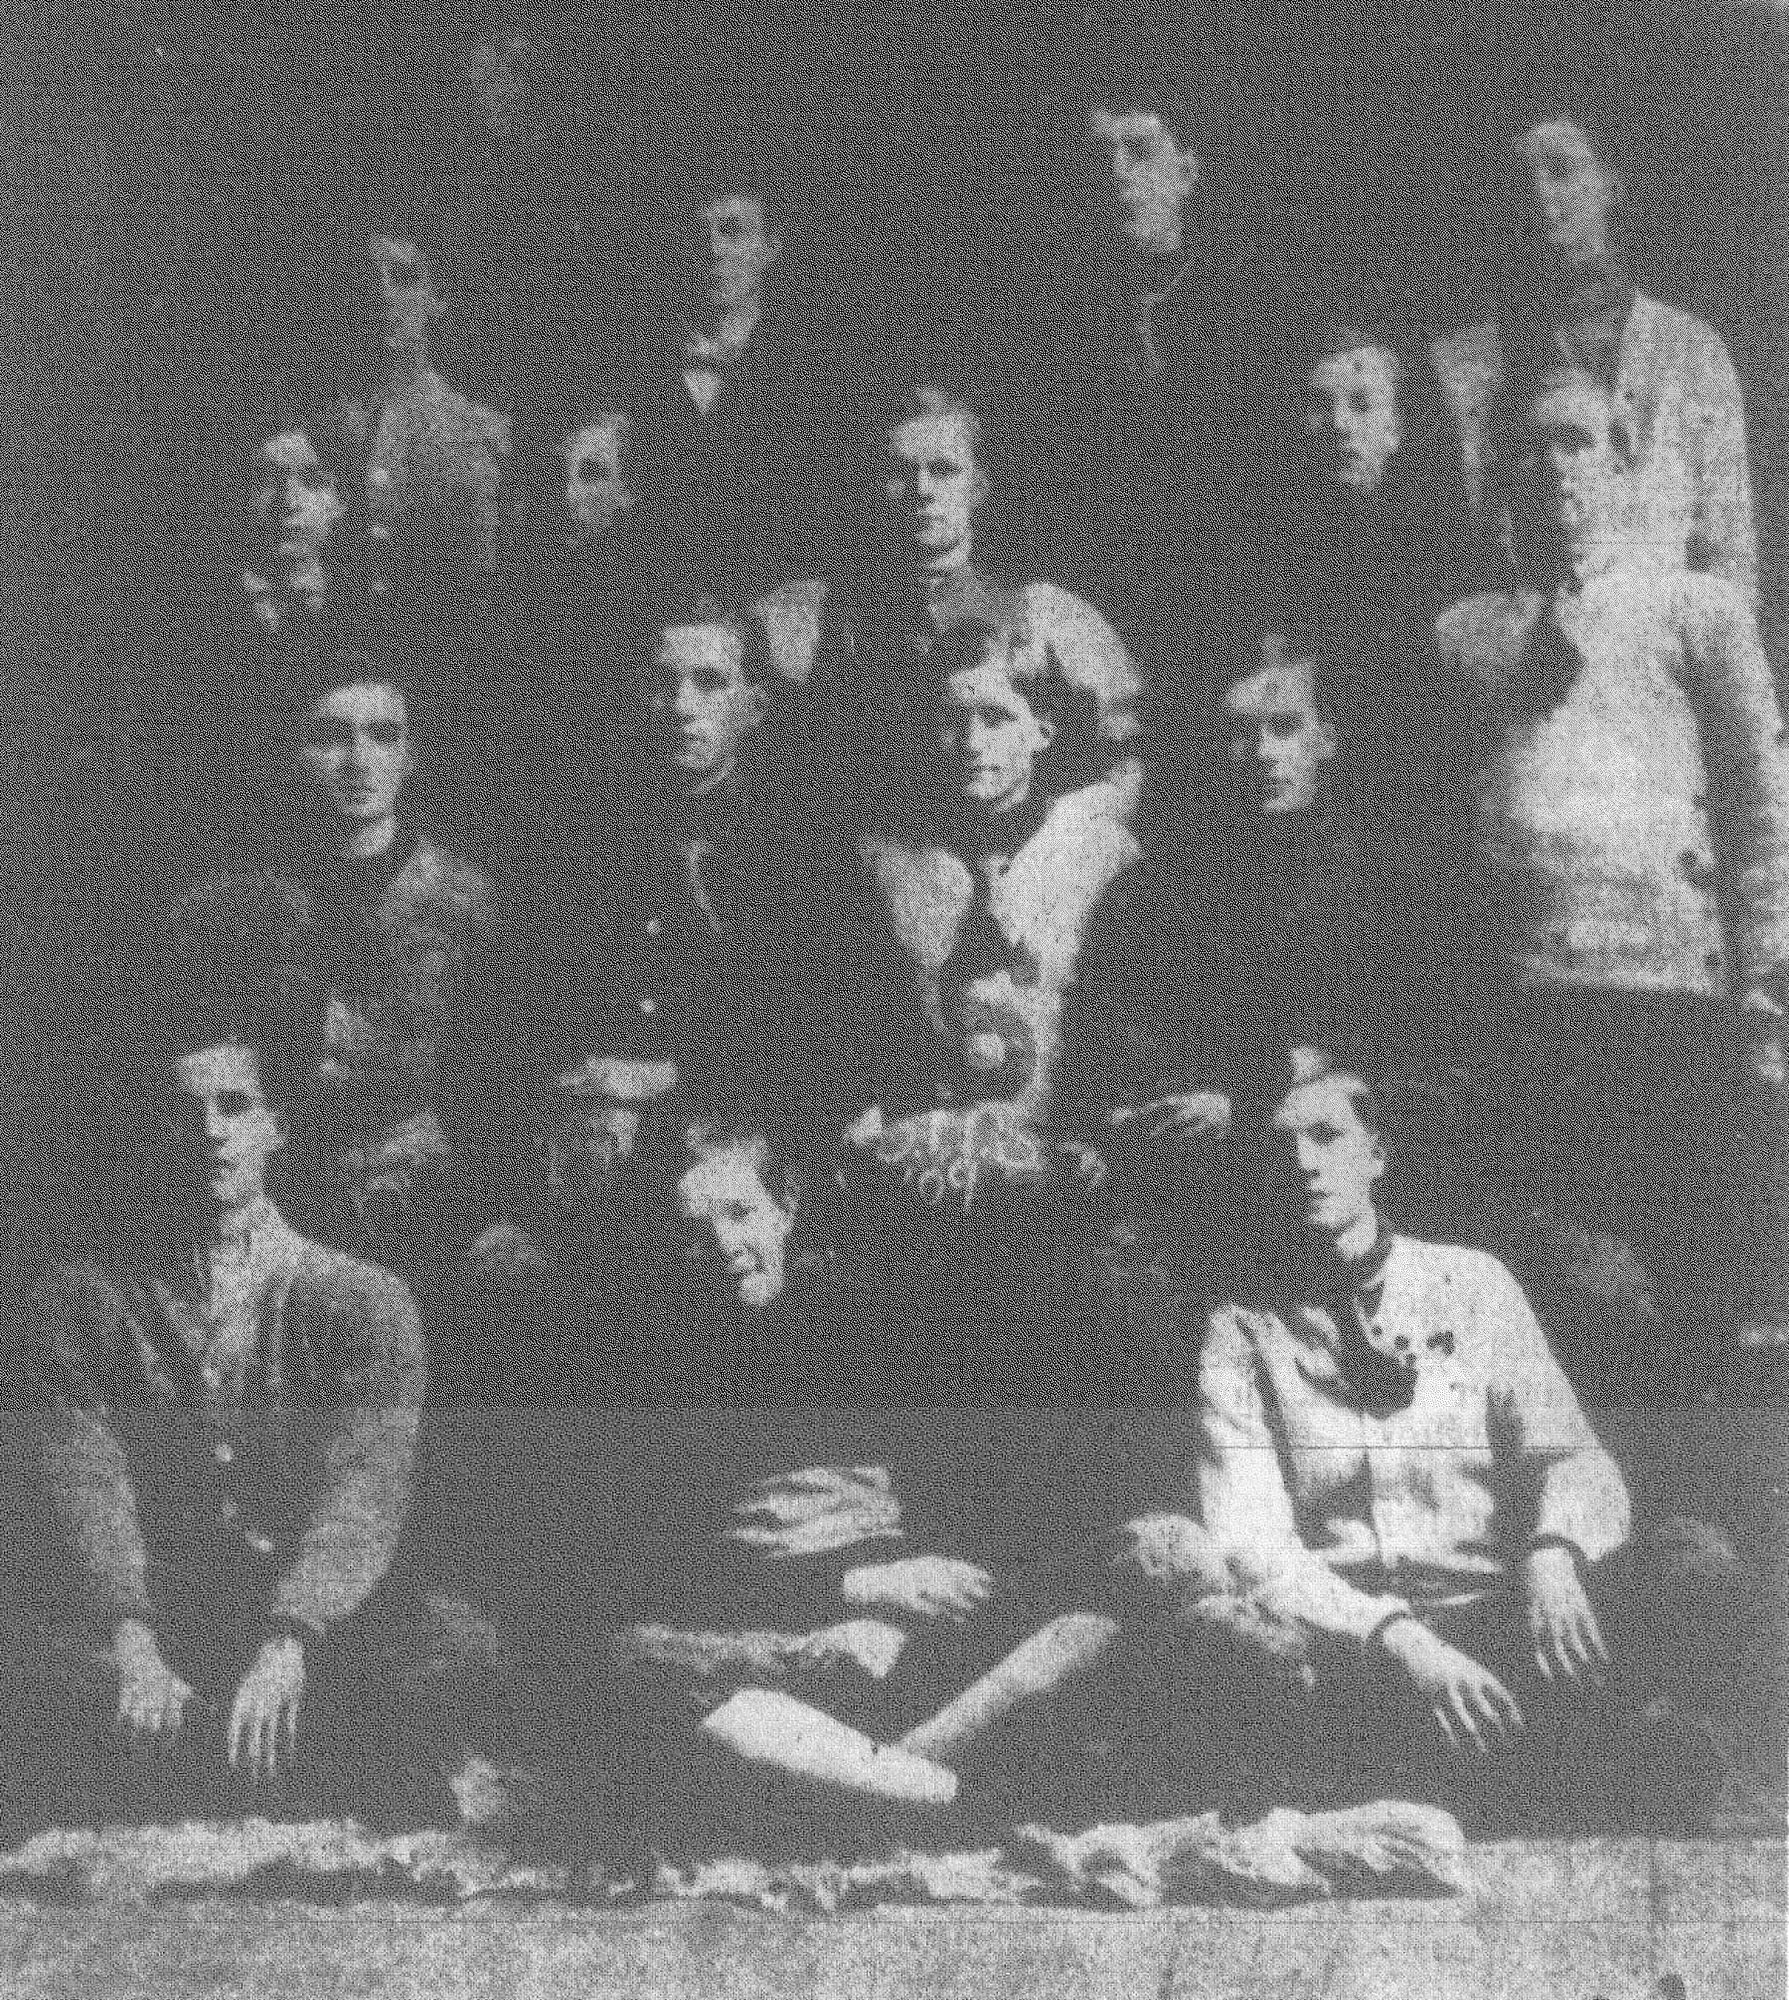 This is the undefeated Sumter High School football team of 1909. Members on the bottom row from left are Hammond Bowman, Harry Walsh, Dick Hood. Second row from left are Fred Nigels, Harry Davis, Nobel Dick and R.T. Brown. Third row are Kinard, Cliff Moise, Julius Cooper, Daniel Brown and William Marshall. Top row are Bob Haynsworth, Caper Smith, Willie Burns and William Brogdon.